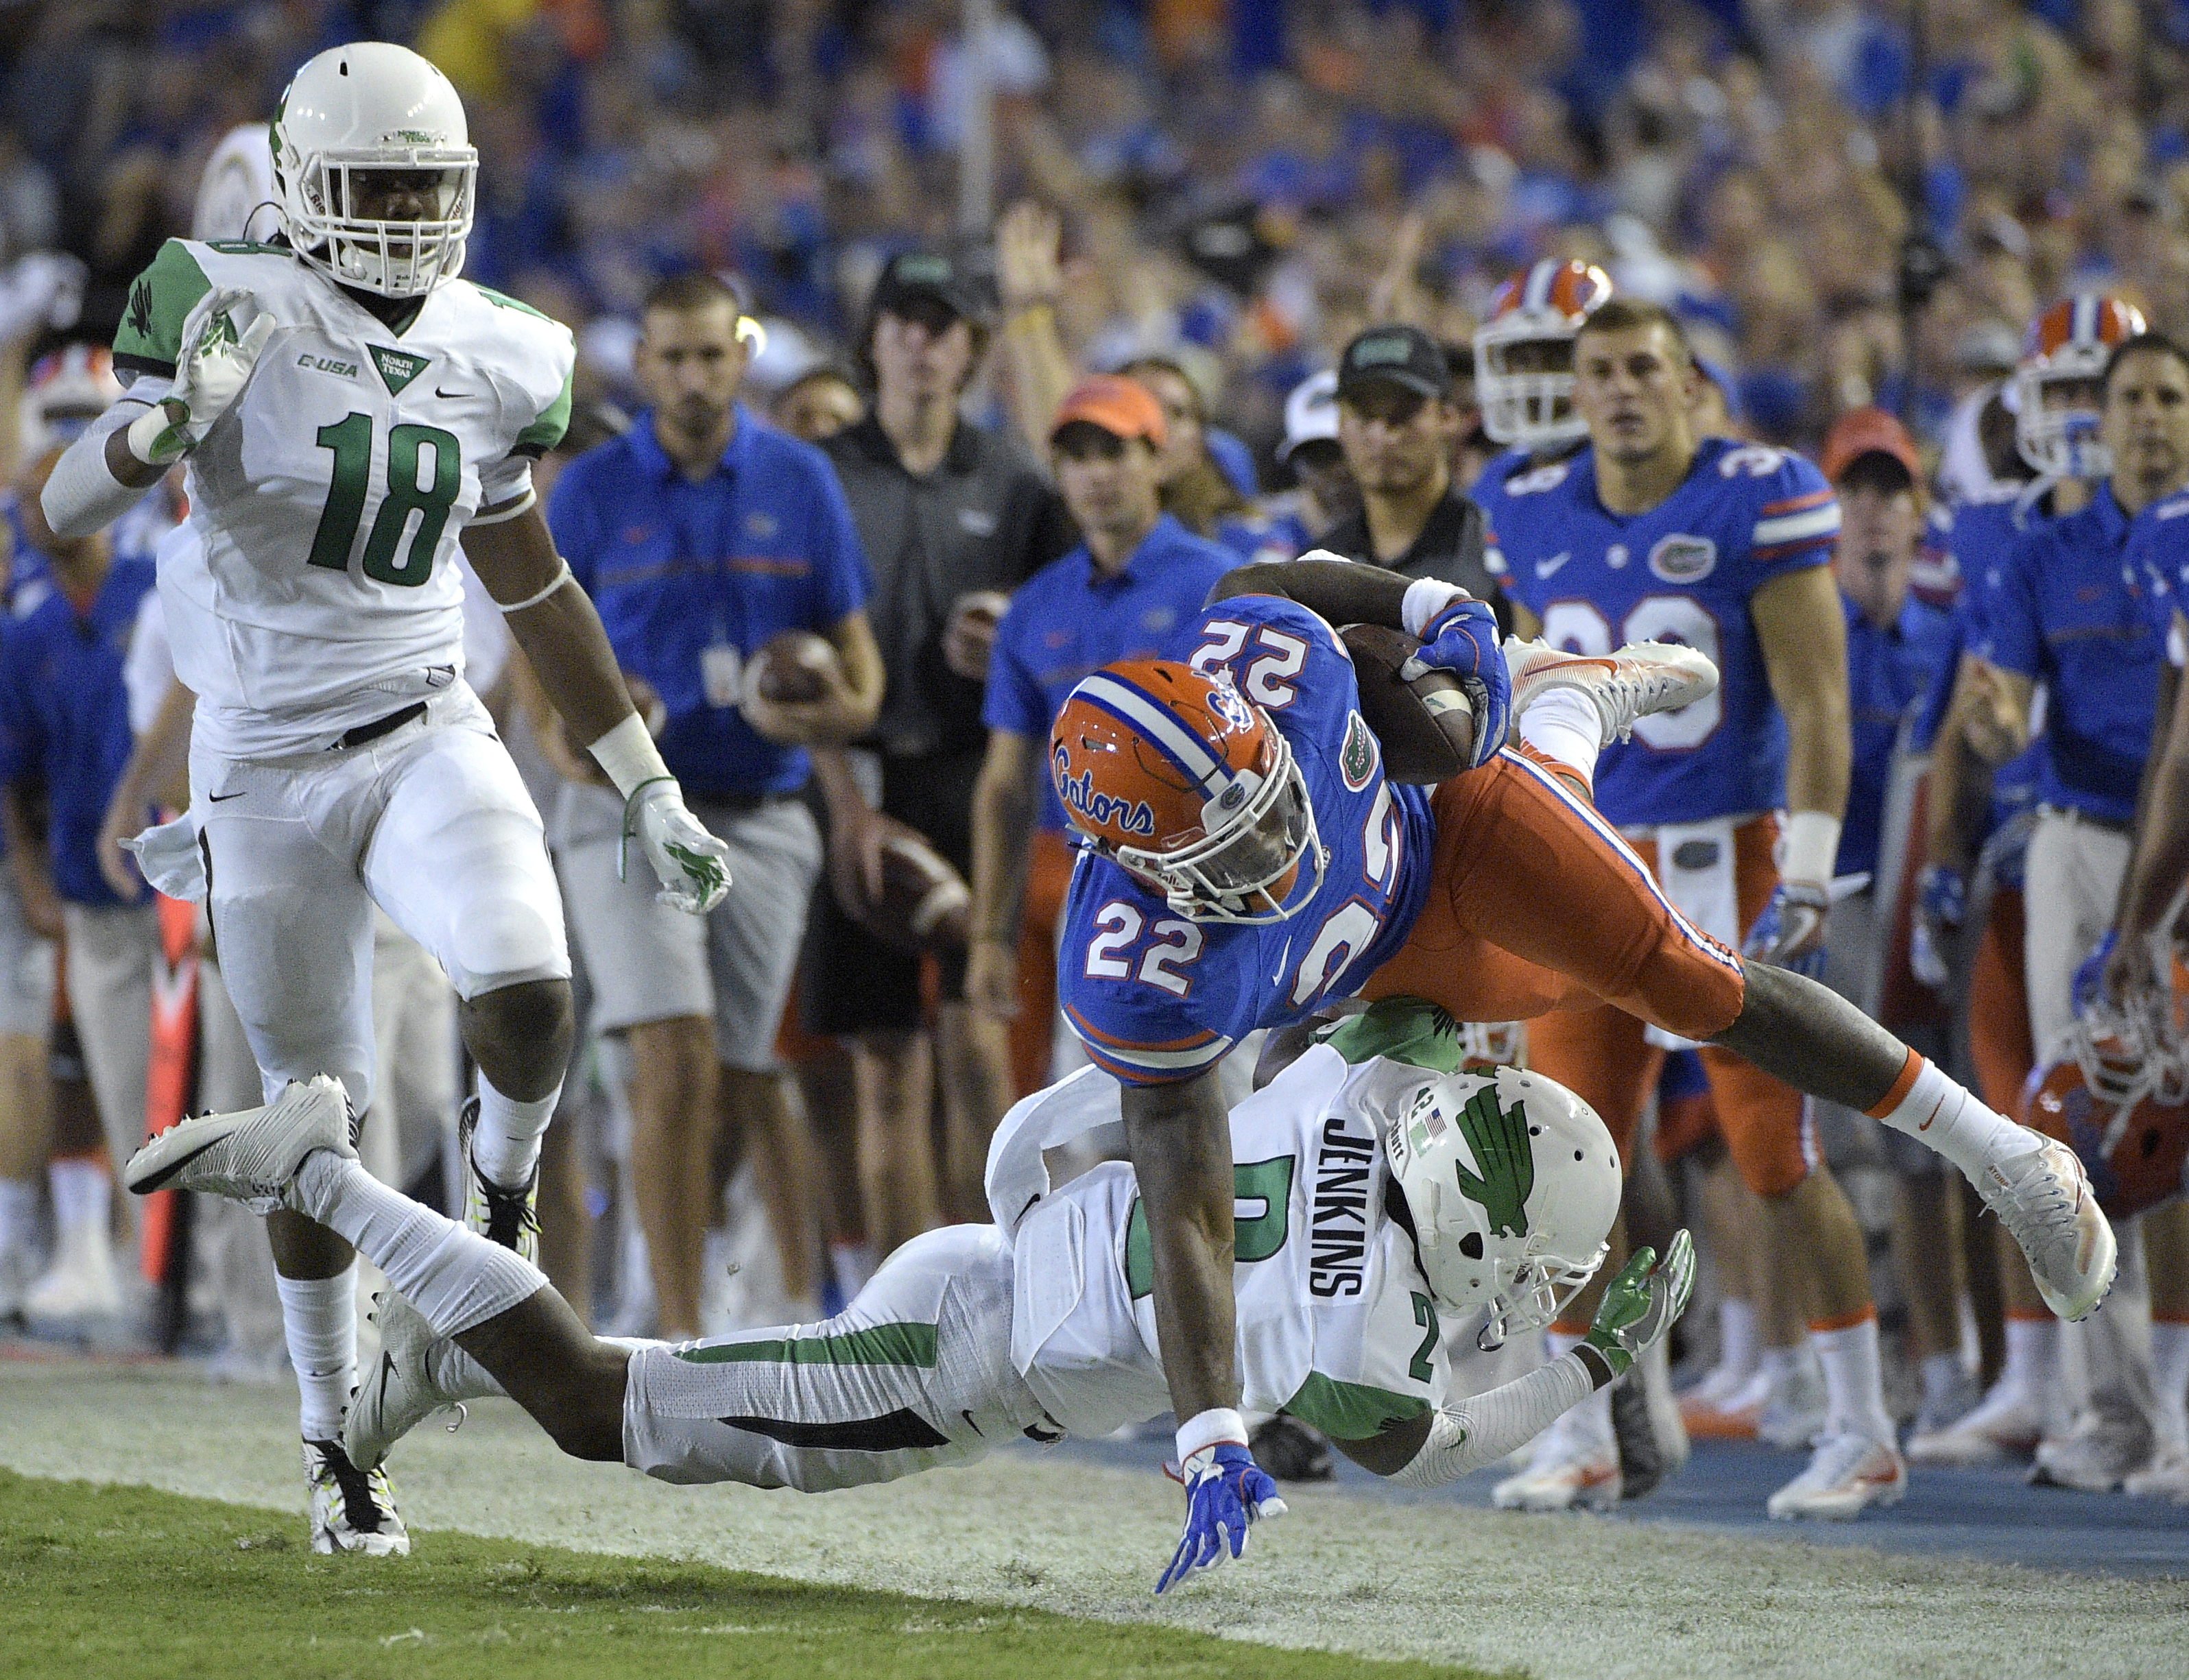 Florida running back Lamical Perine (22) is knocked out of bounds by North Texas defensive back Eric Jenkins (2) after catching a pass for a 29-yard gain during the first half of an NCAA college football game in Gainesville, Fla., Saturday, Sept. 17, 2016